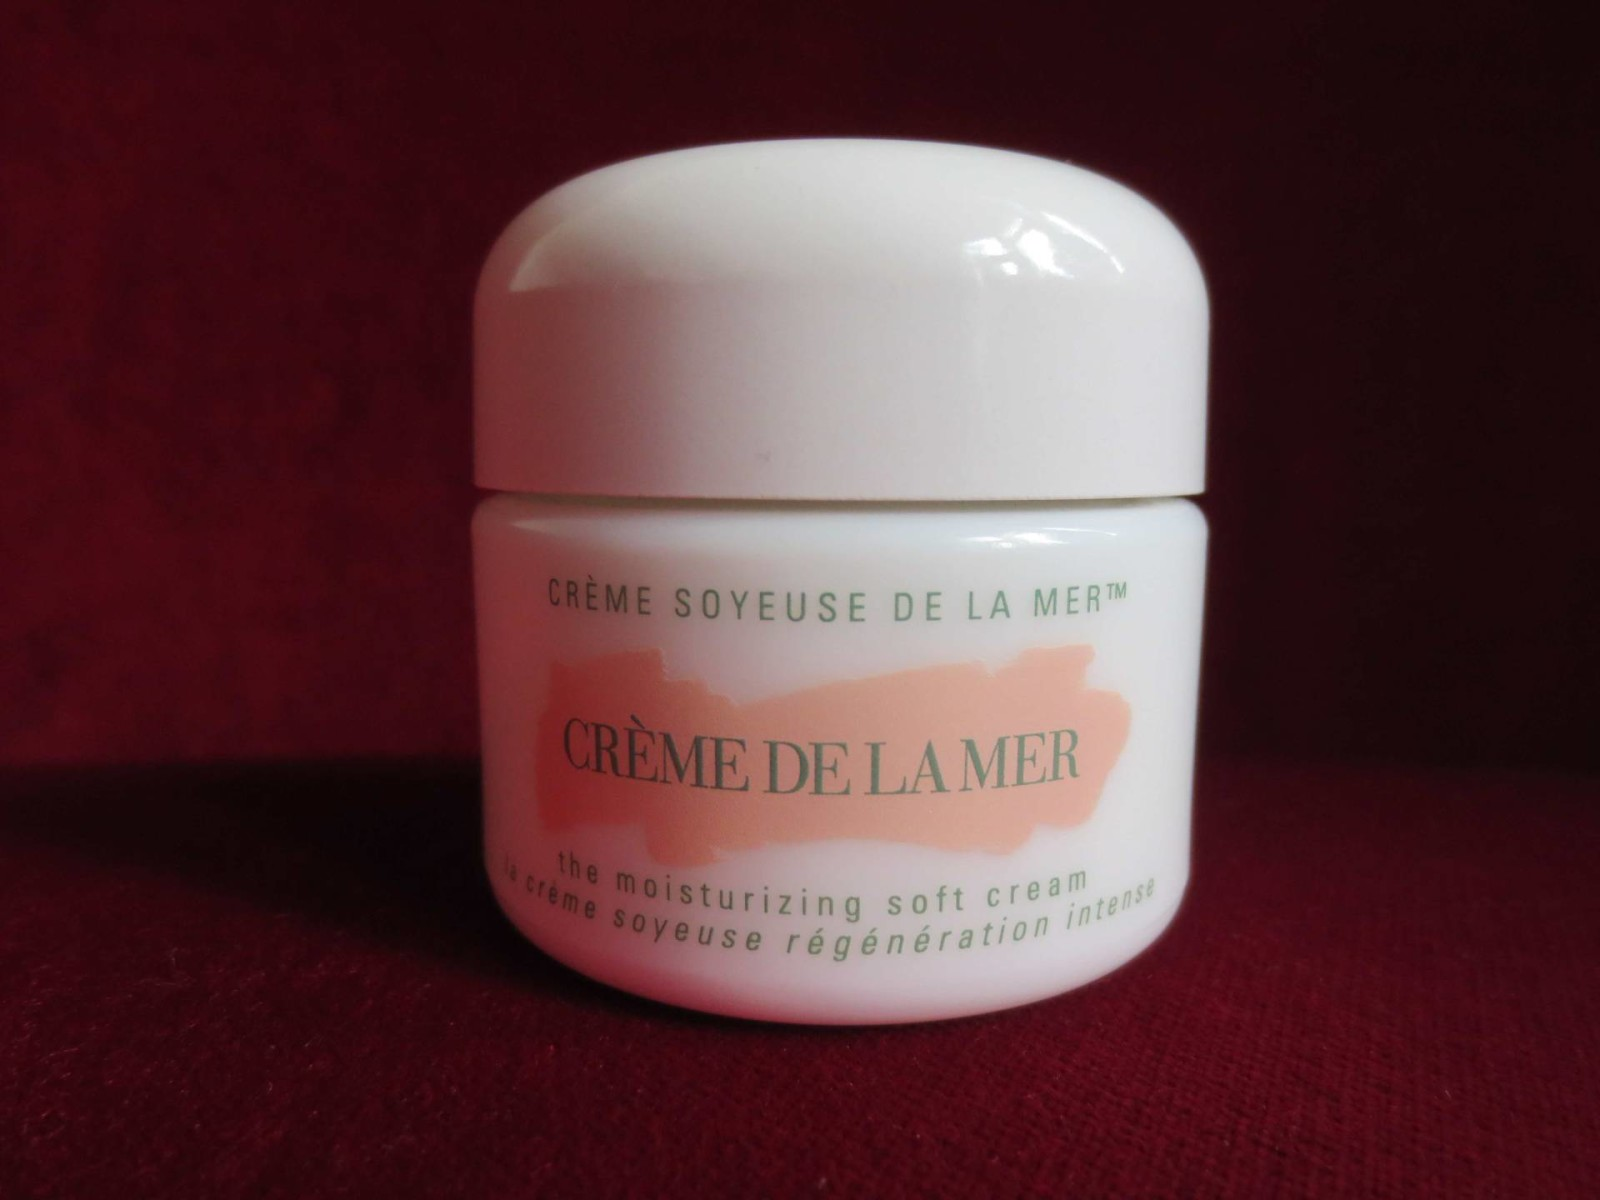 Crème de la mer – is it worth the price tag?